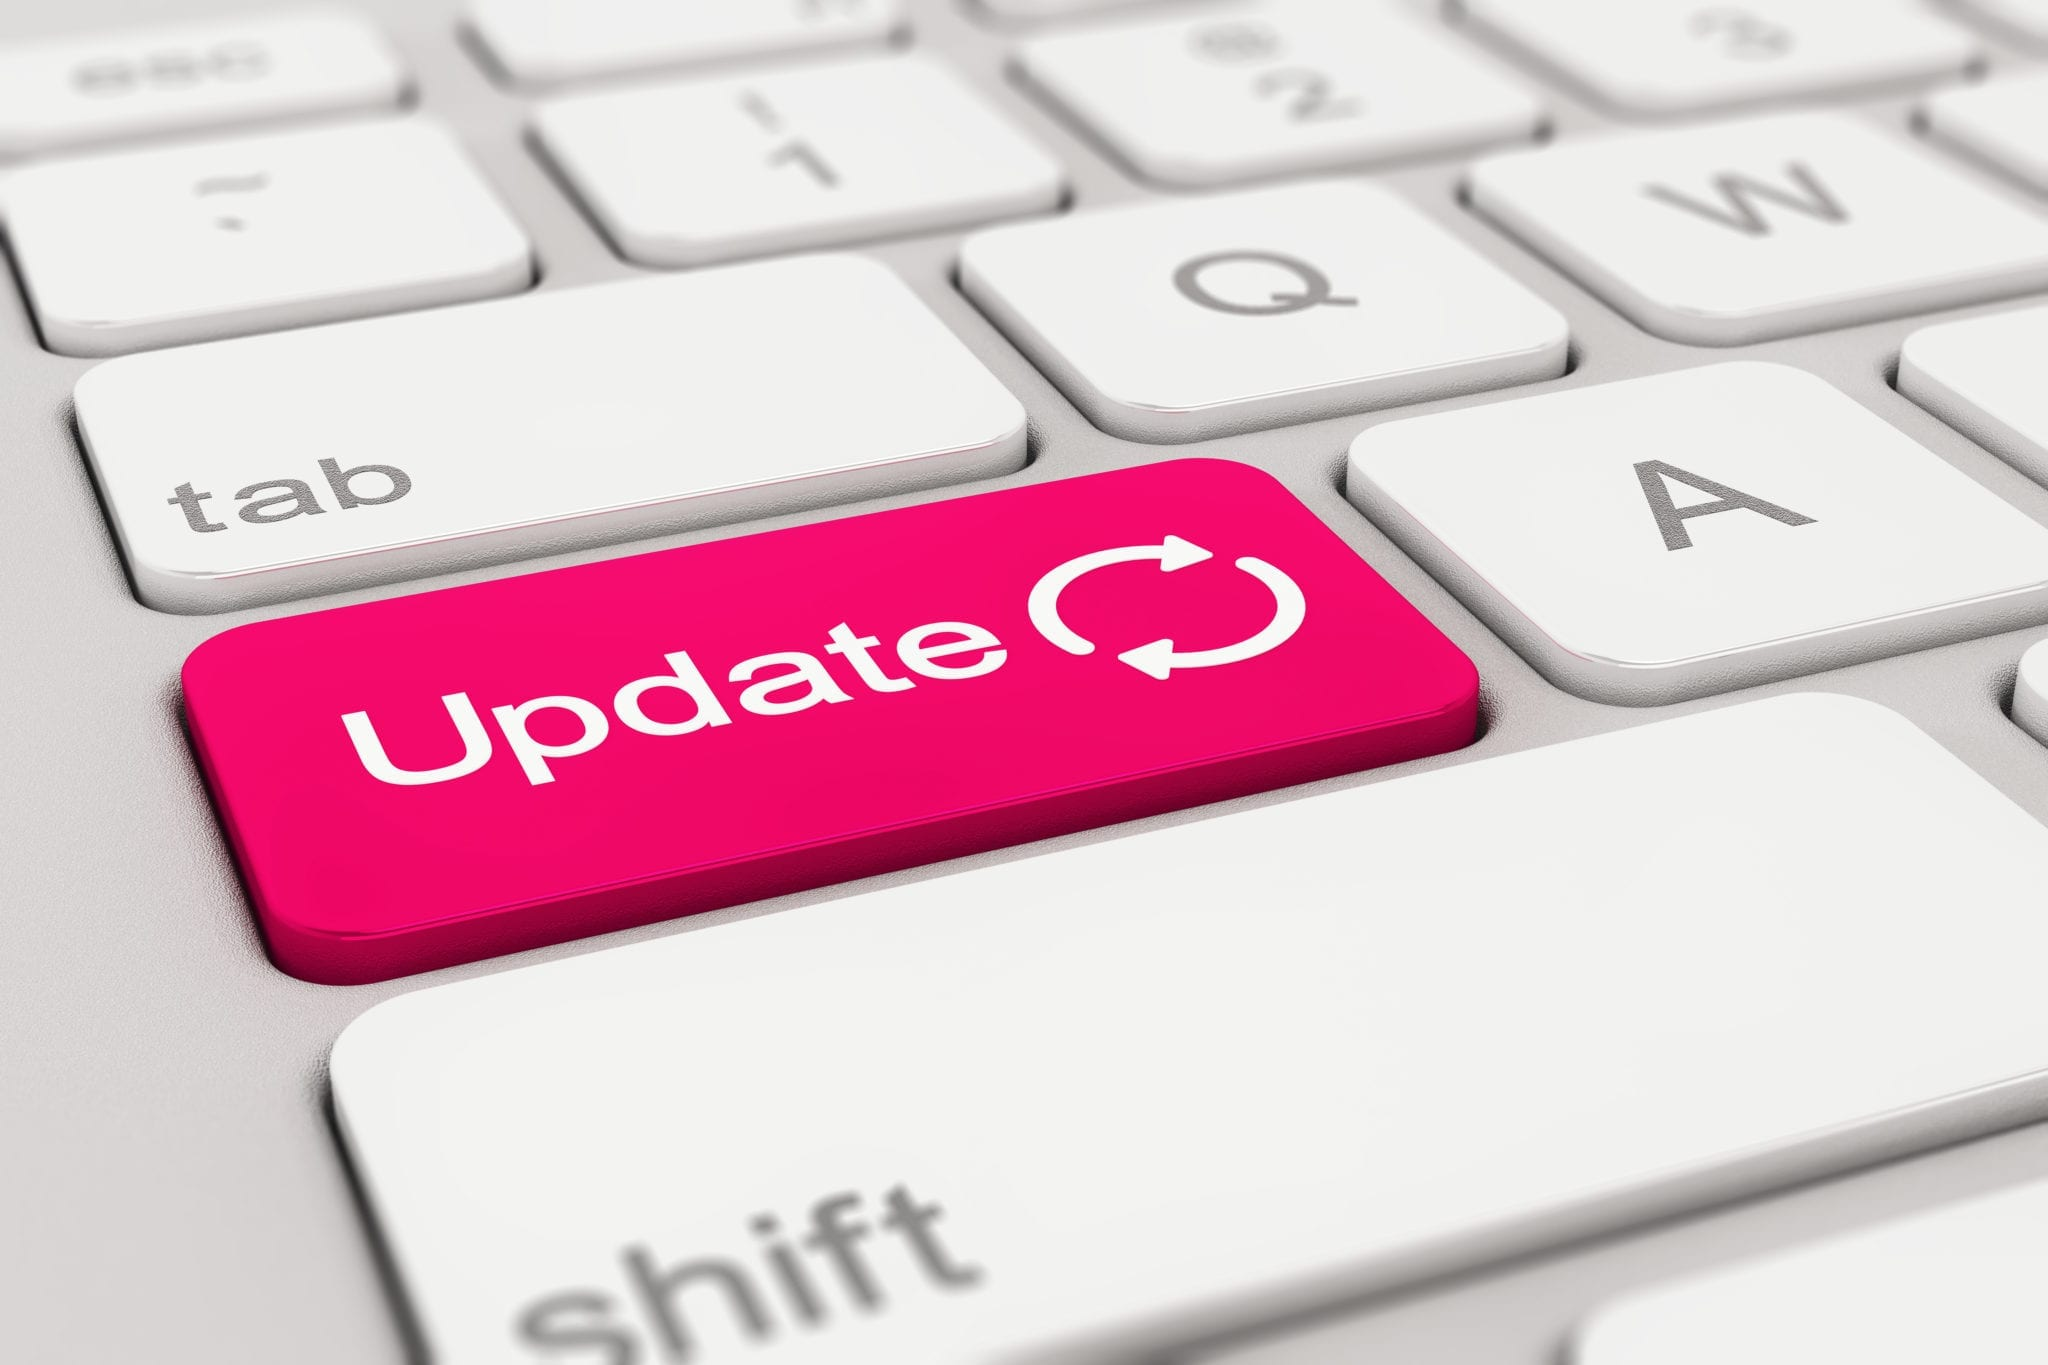 its-time-to-upgrade-drupal-7.38-6.36-released.jpg